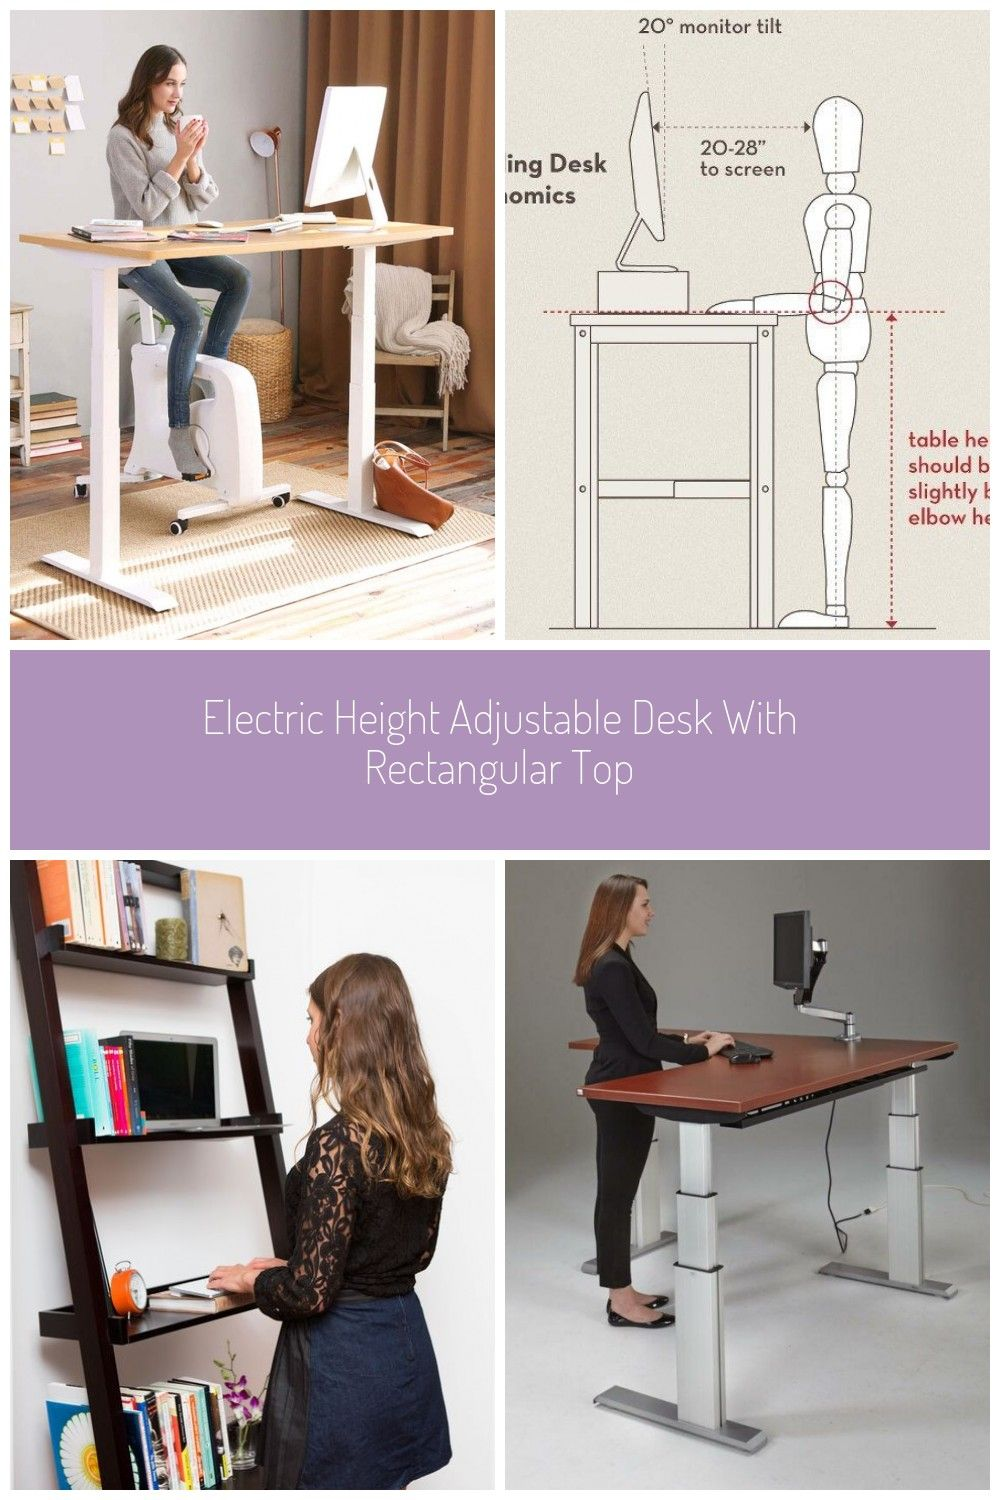 Electric Height Adjustable Desk With Rectangular Top Adjustable Height Desk Adjustable Desk Adjustable Height Standing Desk